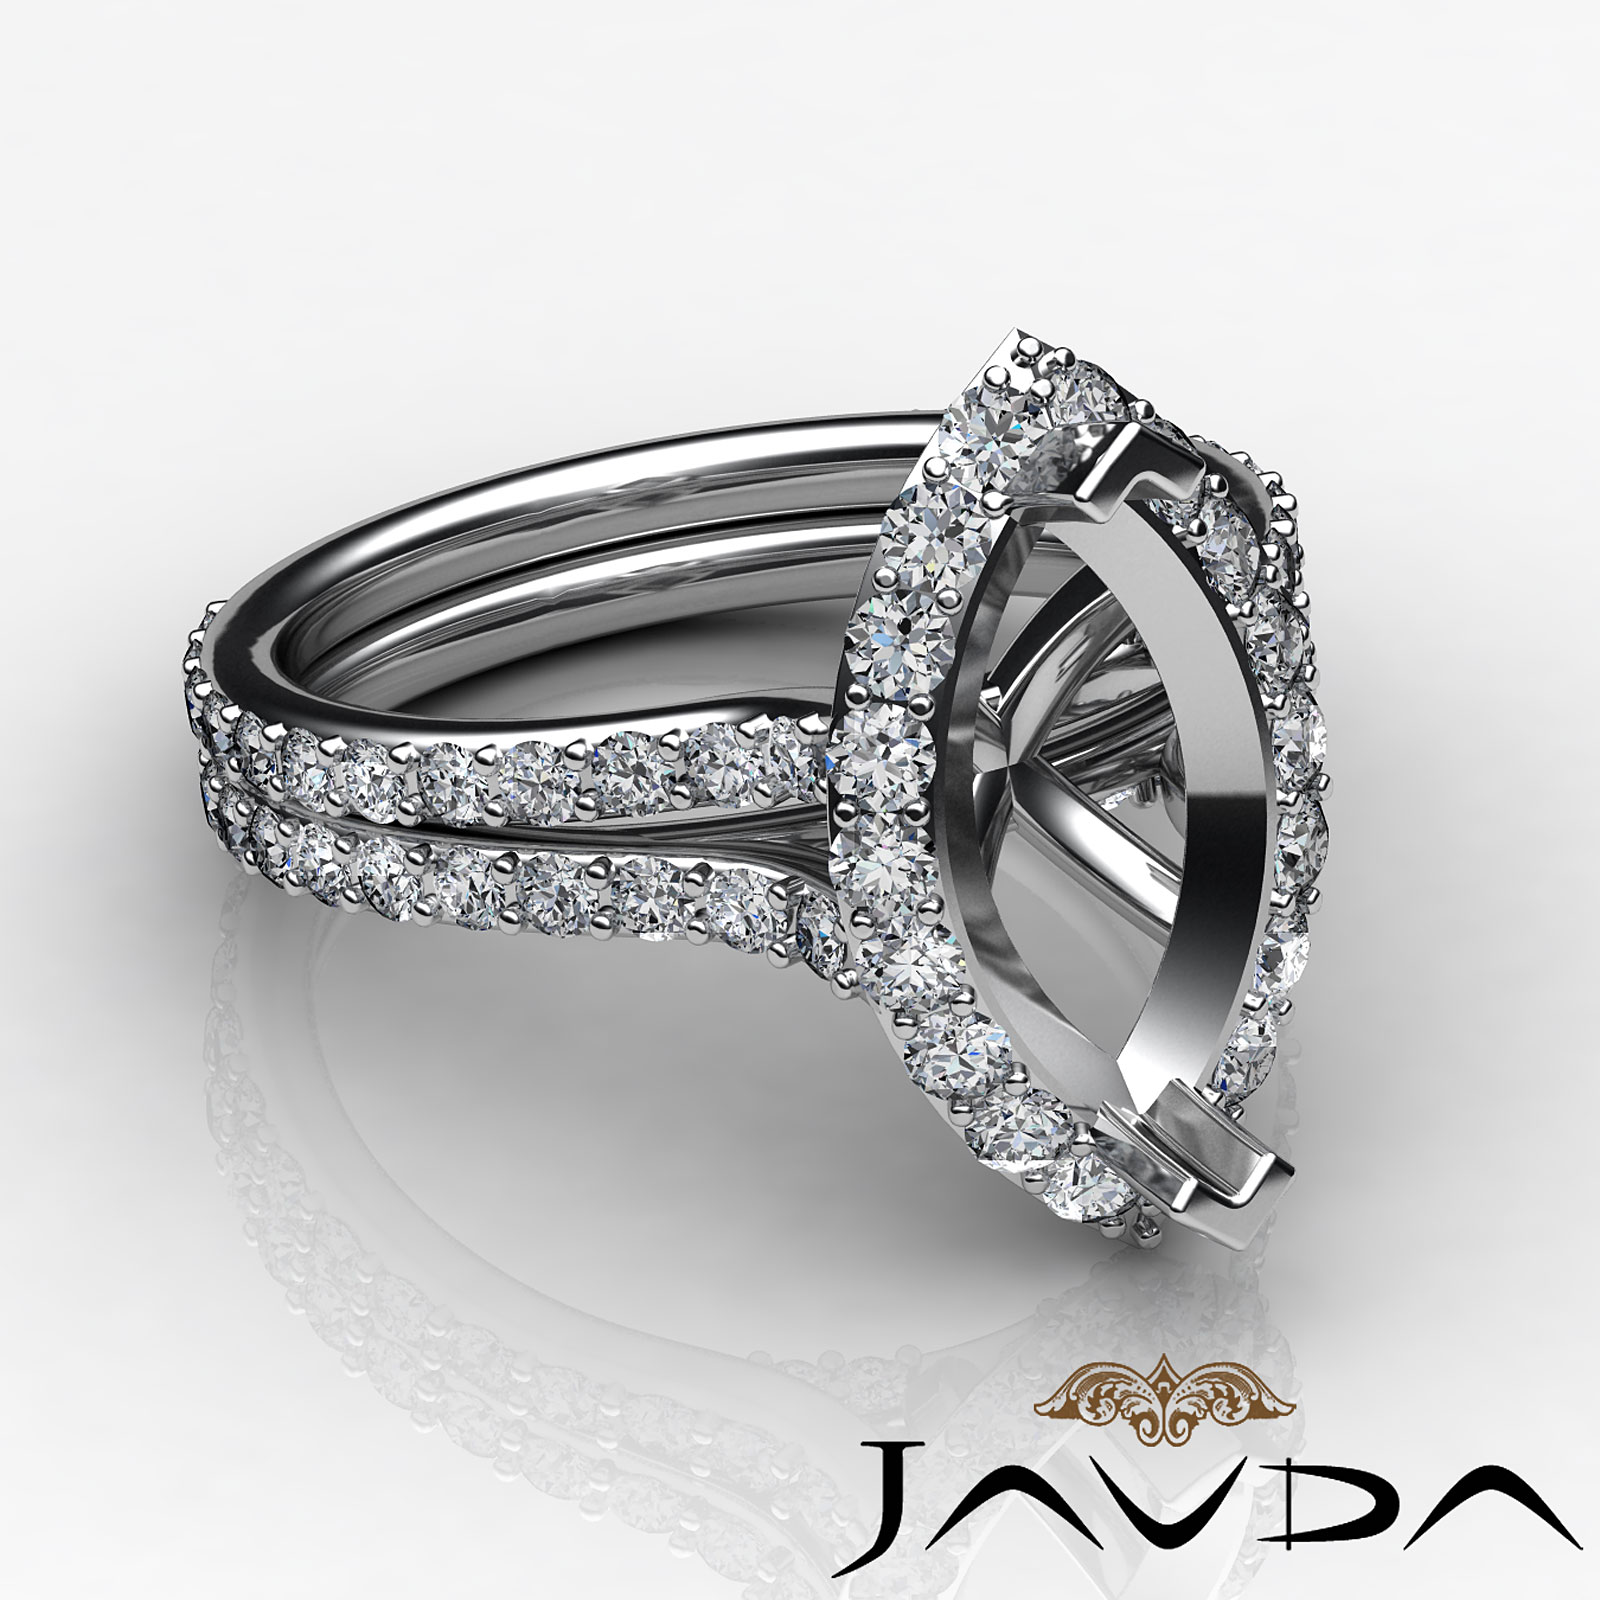 halo setting diamond engagement ring marquise semi mount. Black Bedroom Furniture Sets. Home Design Ideas